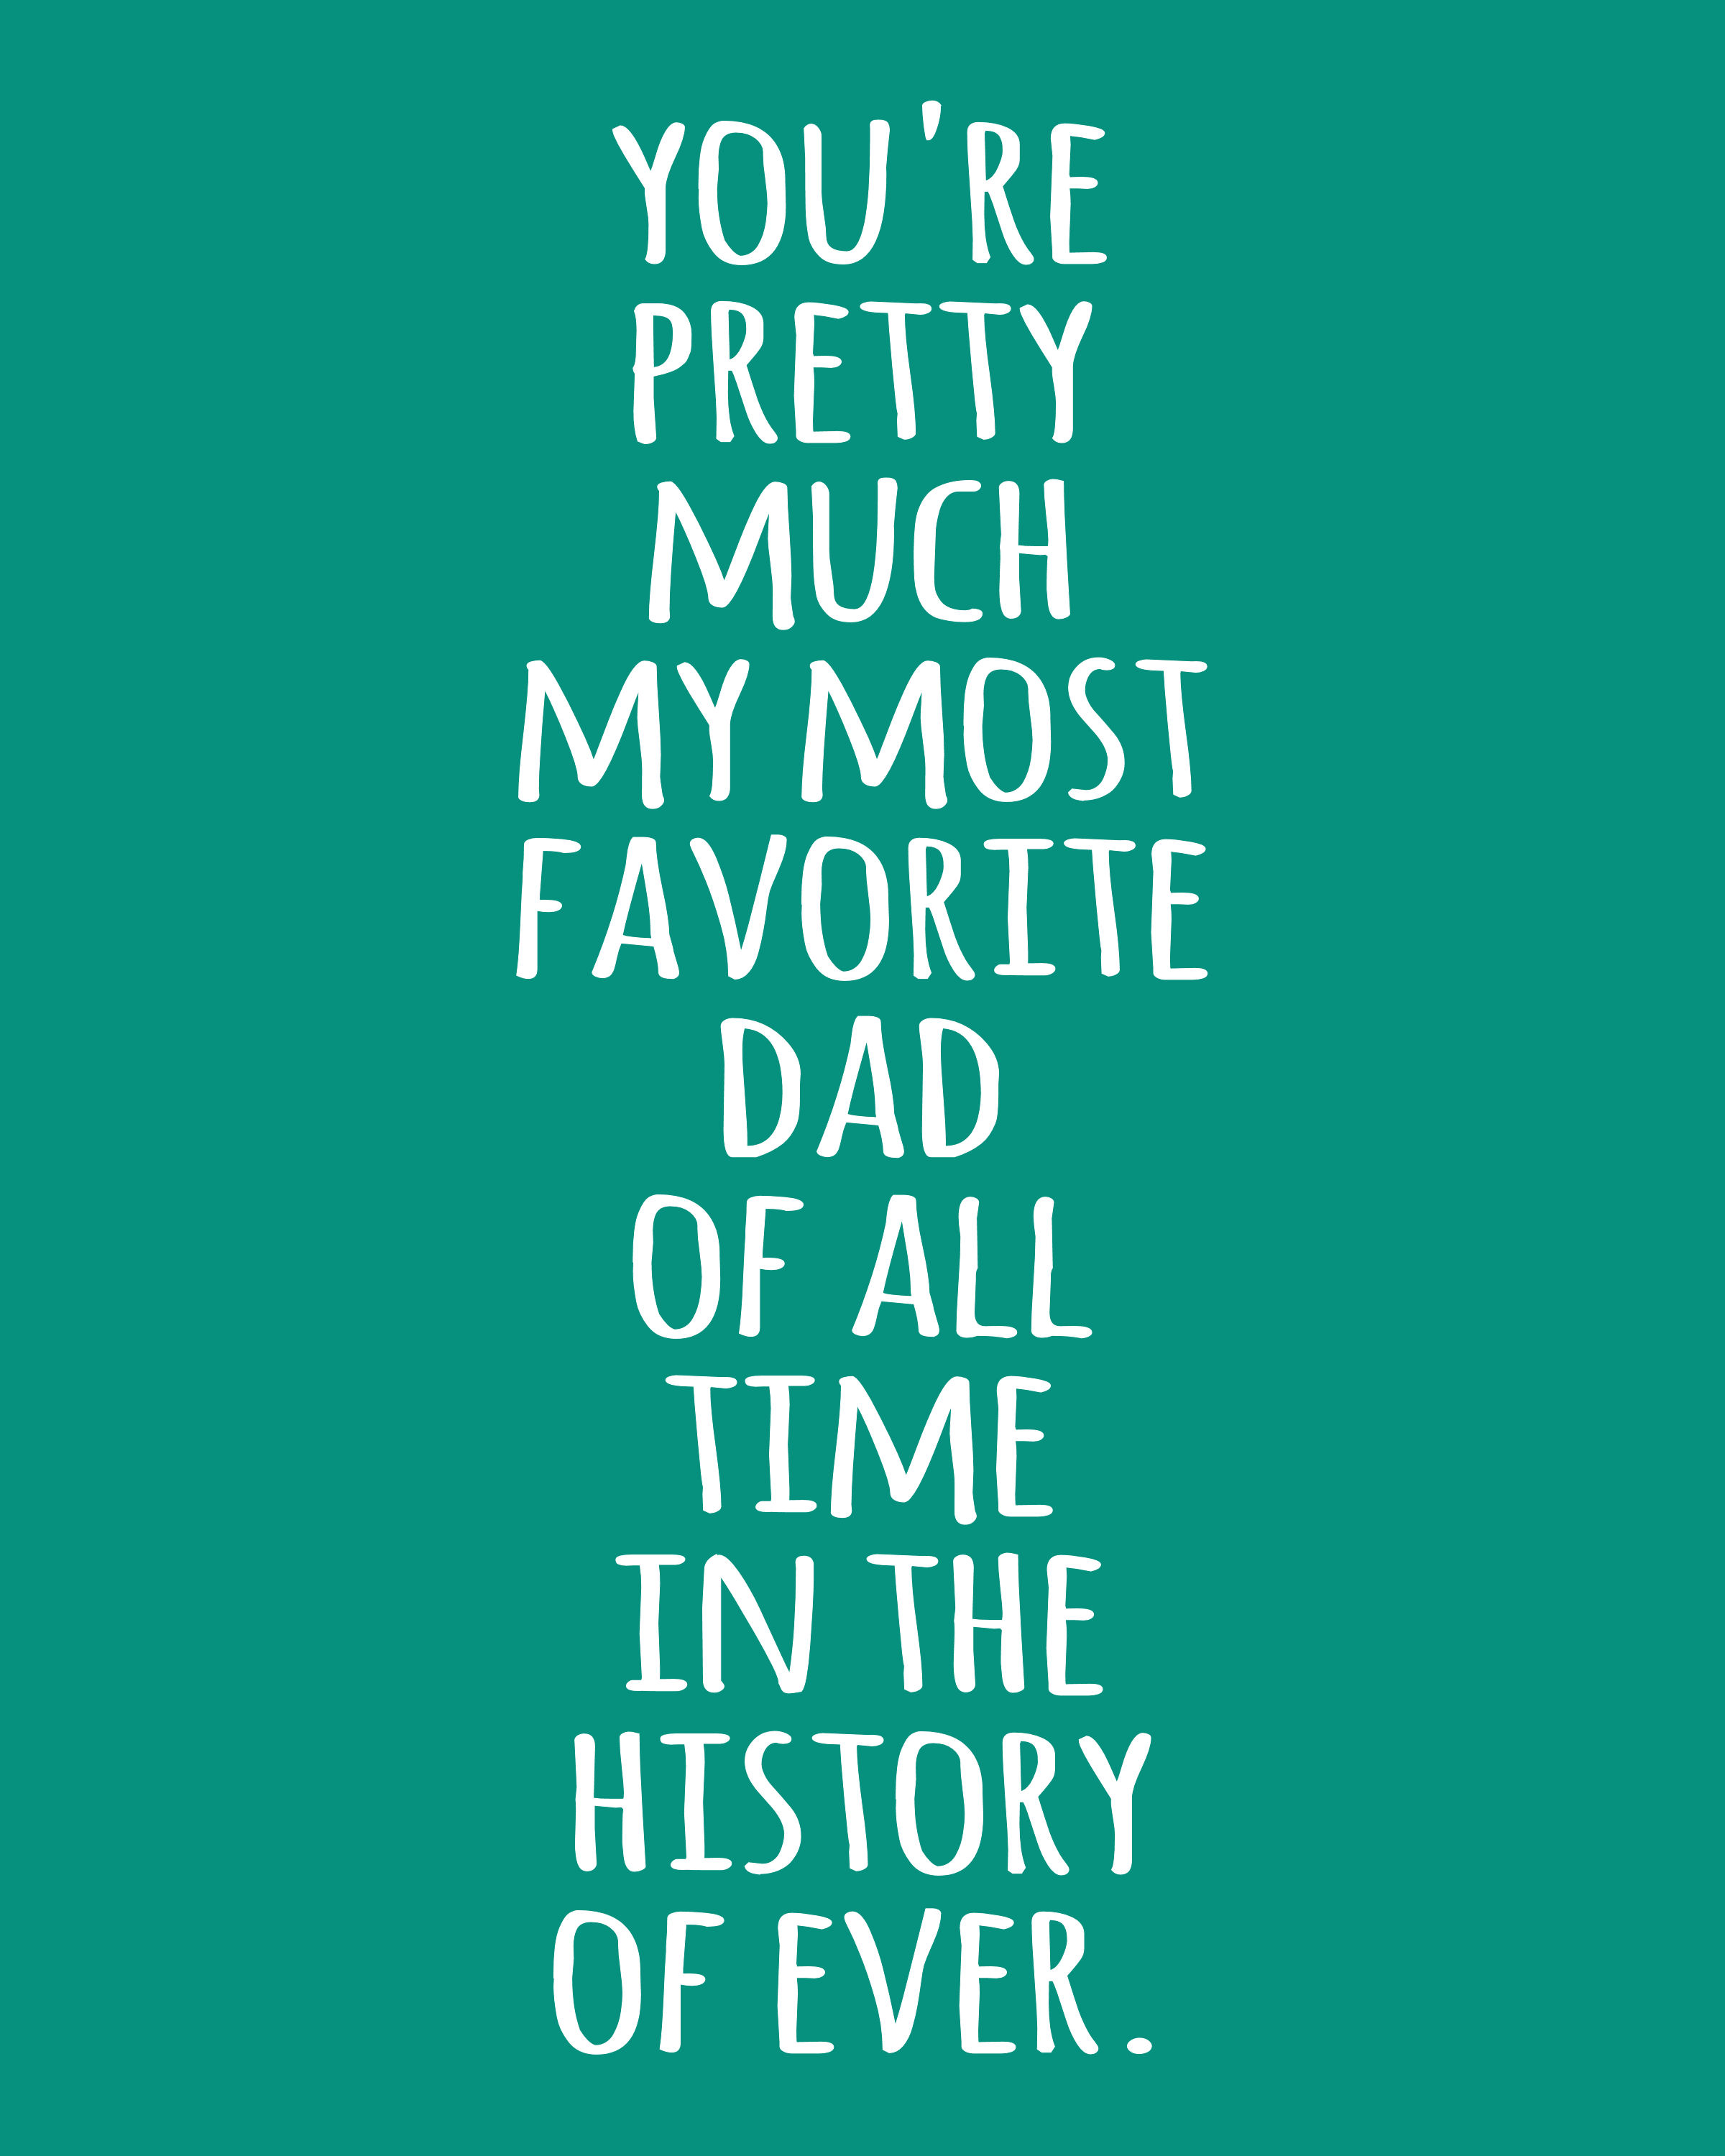 Fathers Day Quotes From Daughter: Loser Dad Quotes. QuotesGram